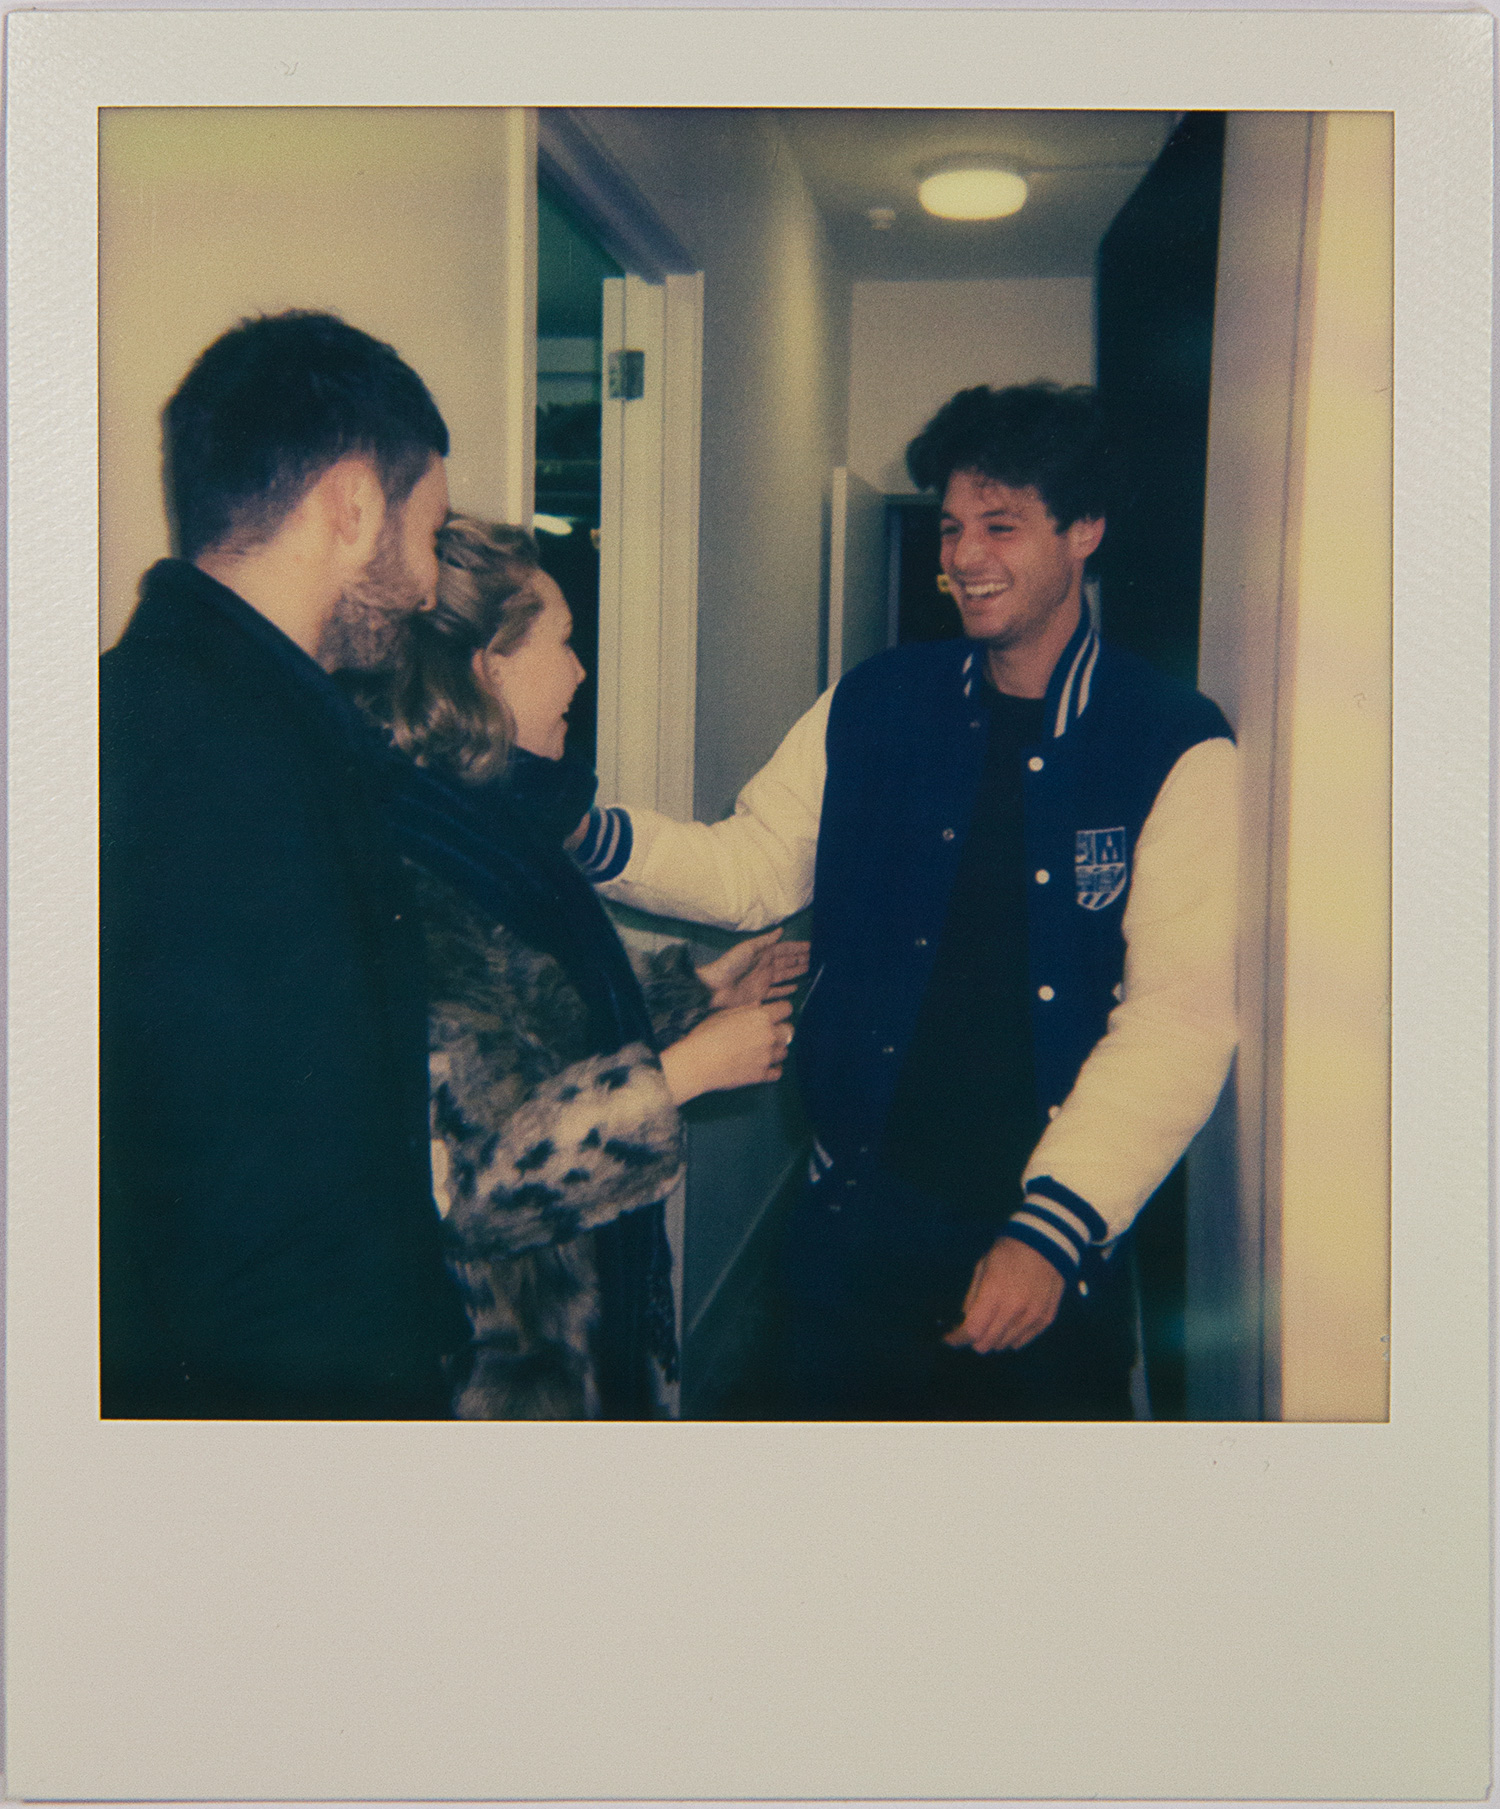 PYLOT ISSUE 04 LAUNCH PARTY IMPOSSIBLE PROJECT 12